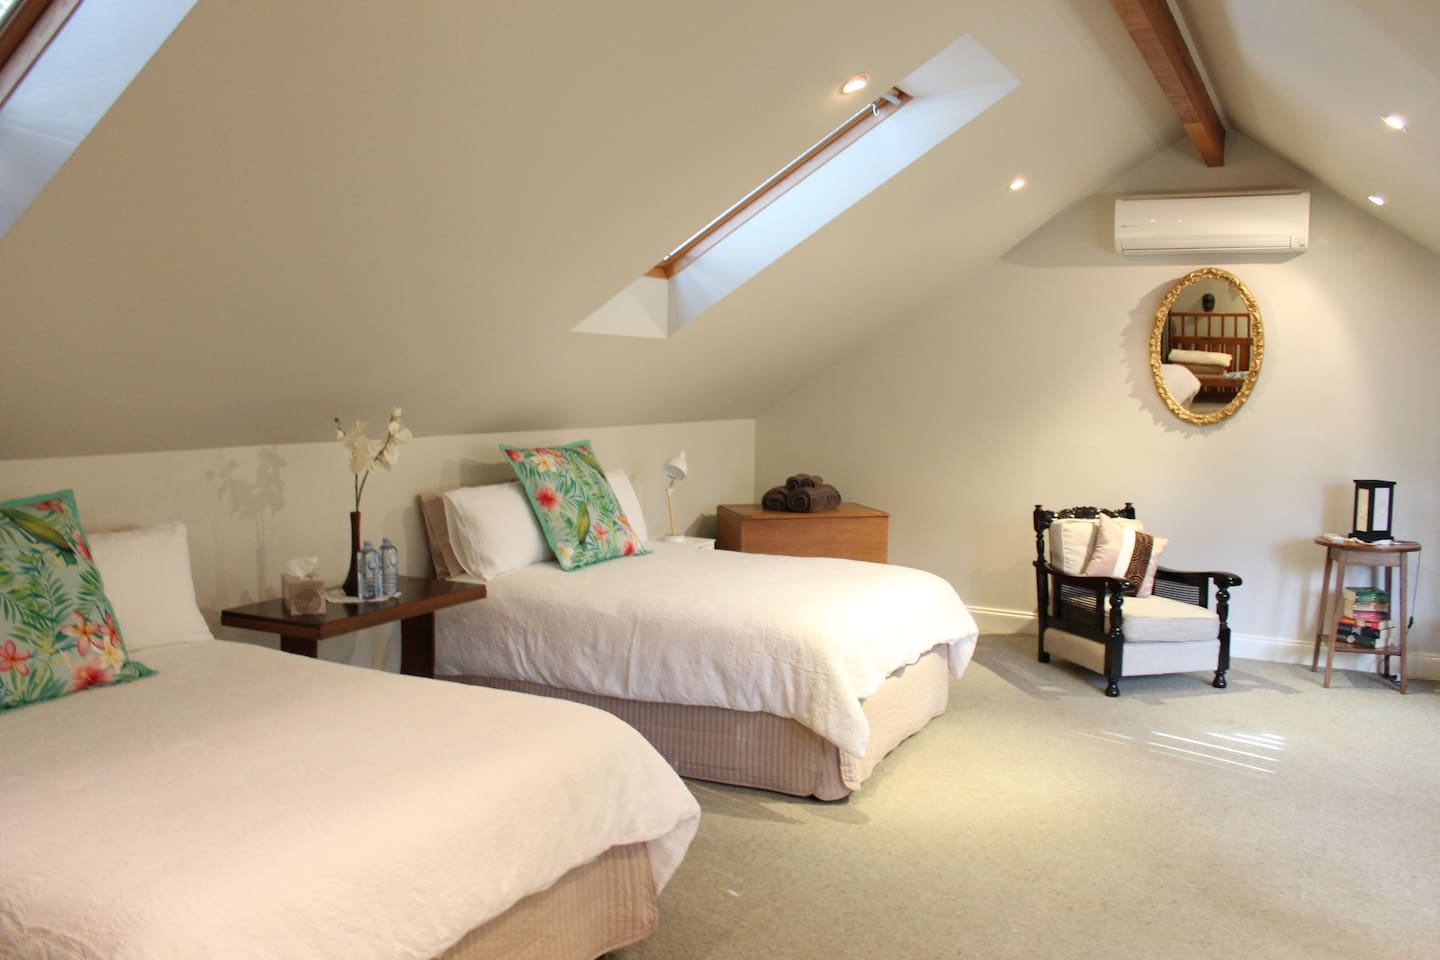 Huge bedroom with 2 double beds, daybed & T.V